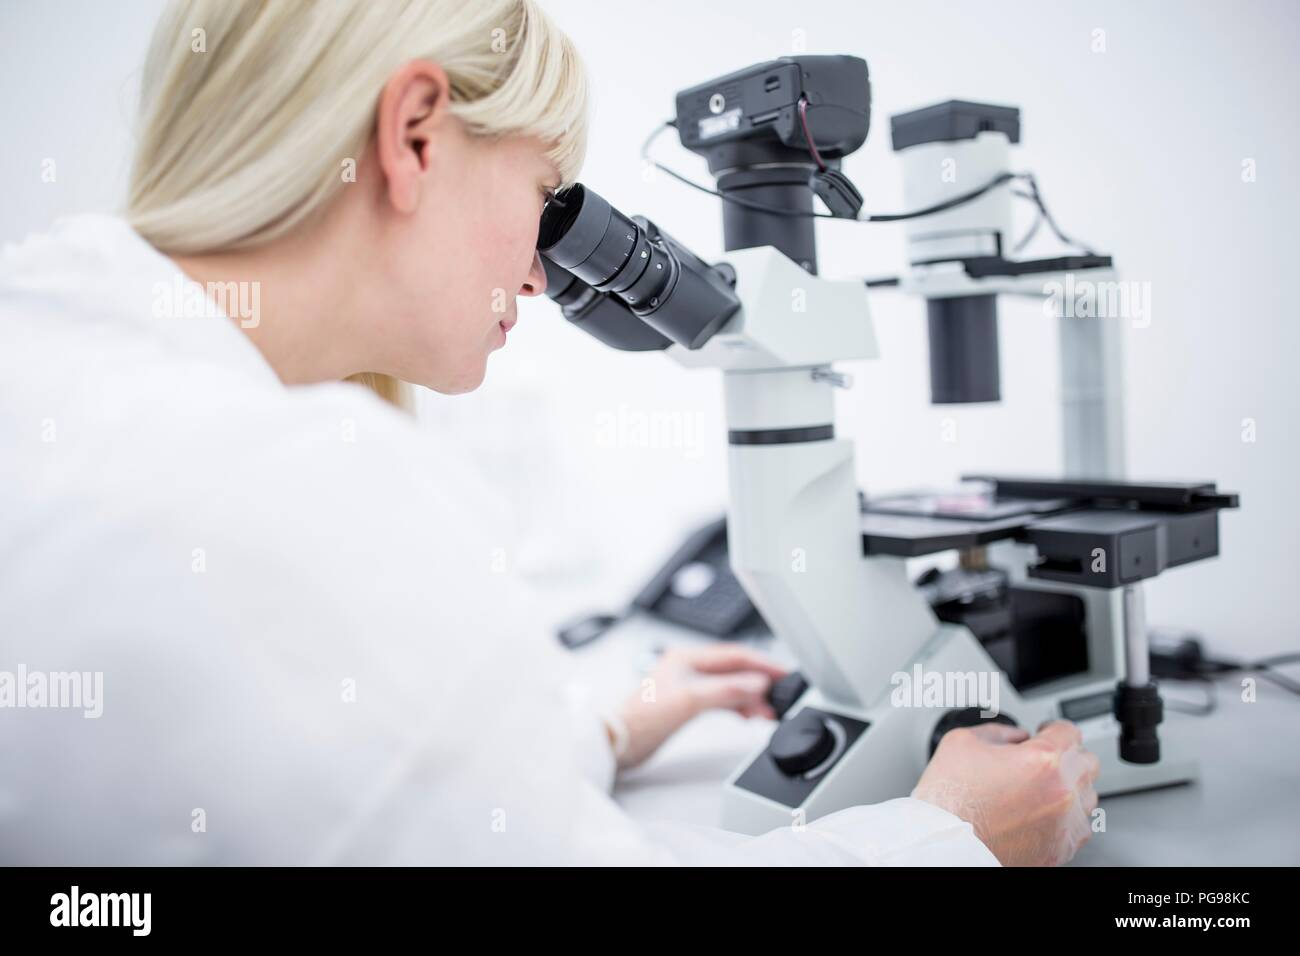 Scientist examining cultured cells under a microscope. - Stock Image